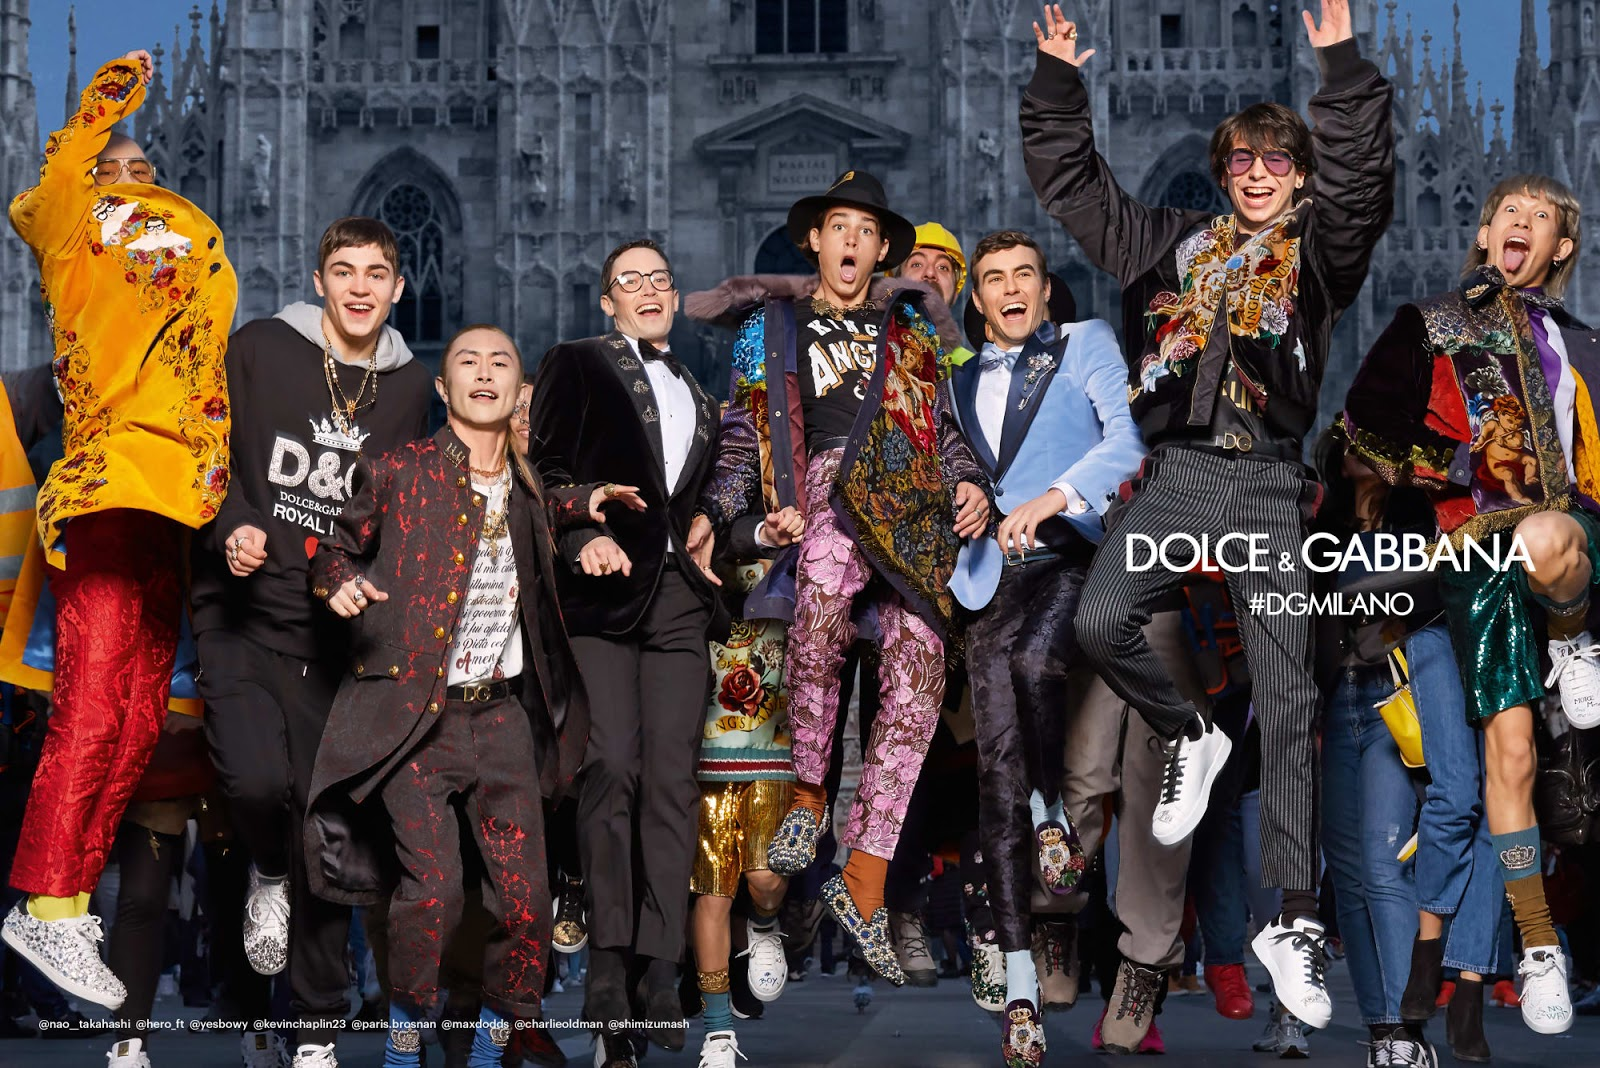 be6c849ca40 Dolce   Gabbana s Latest Campaign features Eclectic Mix of Fashion ...